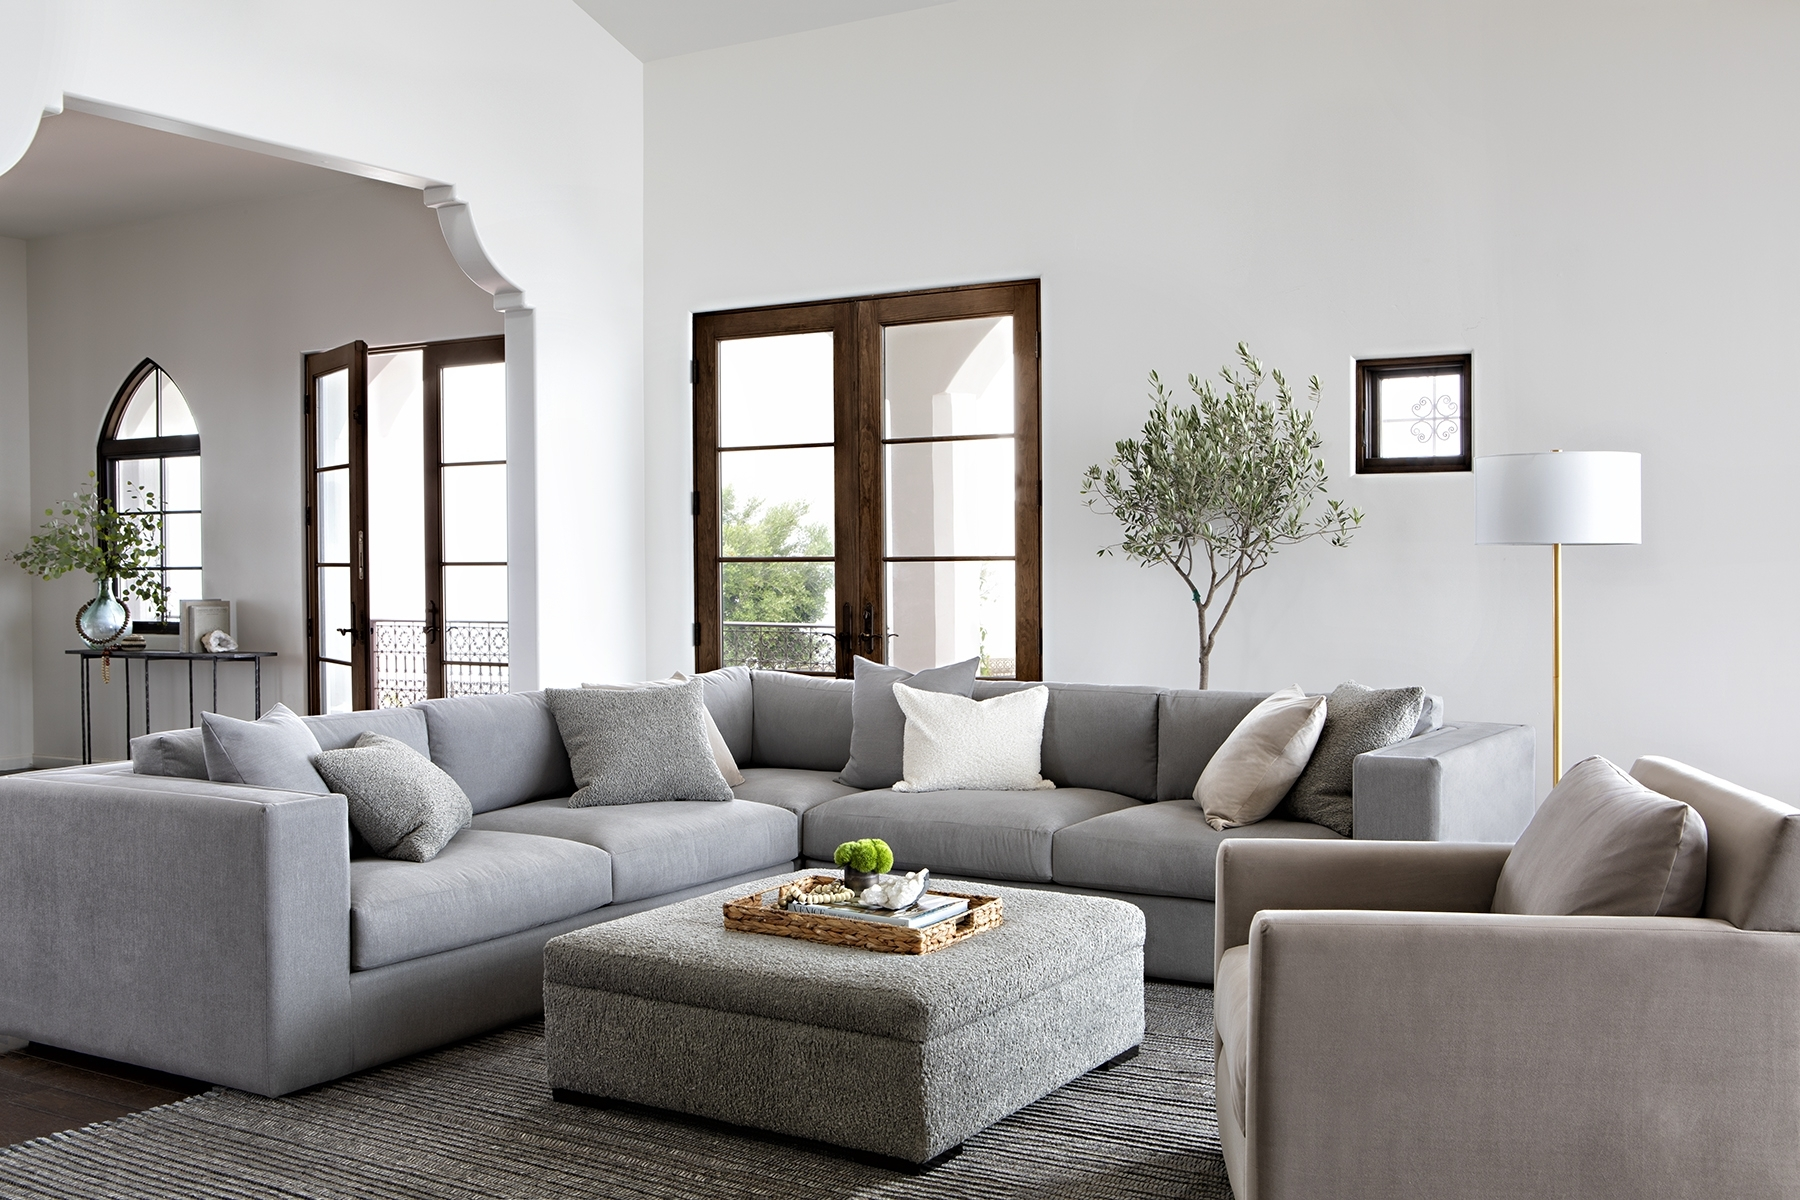 Nate Berkus & Jeremiah Brent's Newest Affordable Collection | Rue with regard to Soane 3 Piece Sectionals By Nate Berkus And Jeremiah Brent (Image 8 of 30)